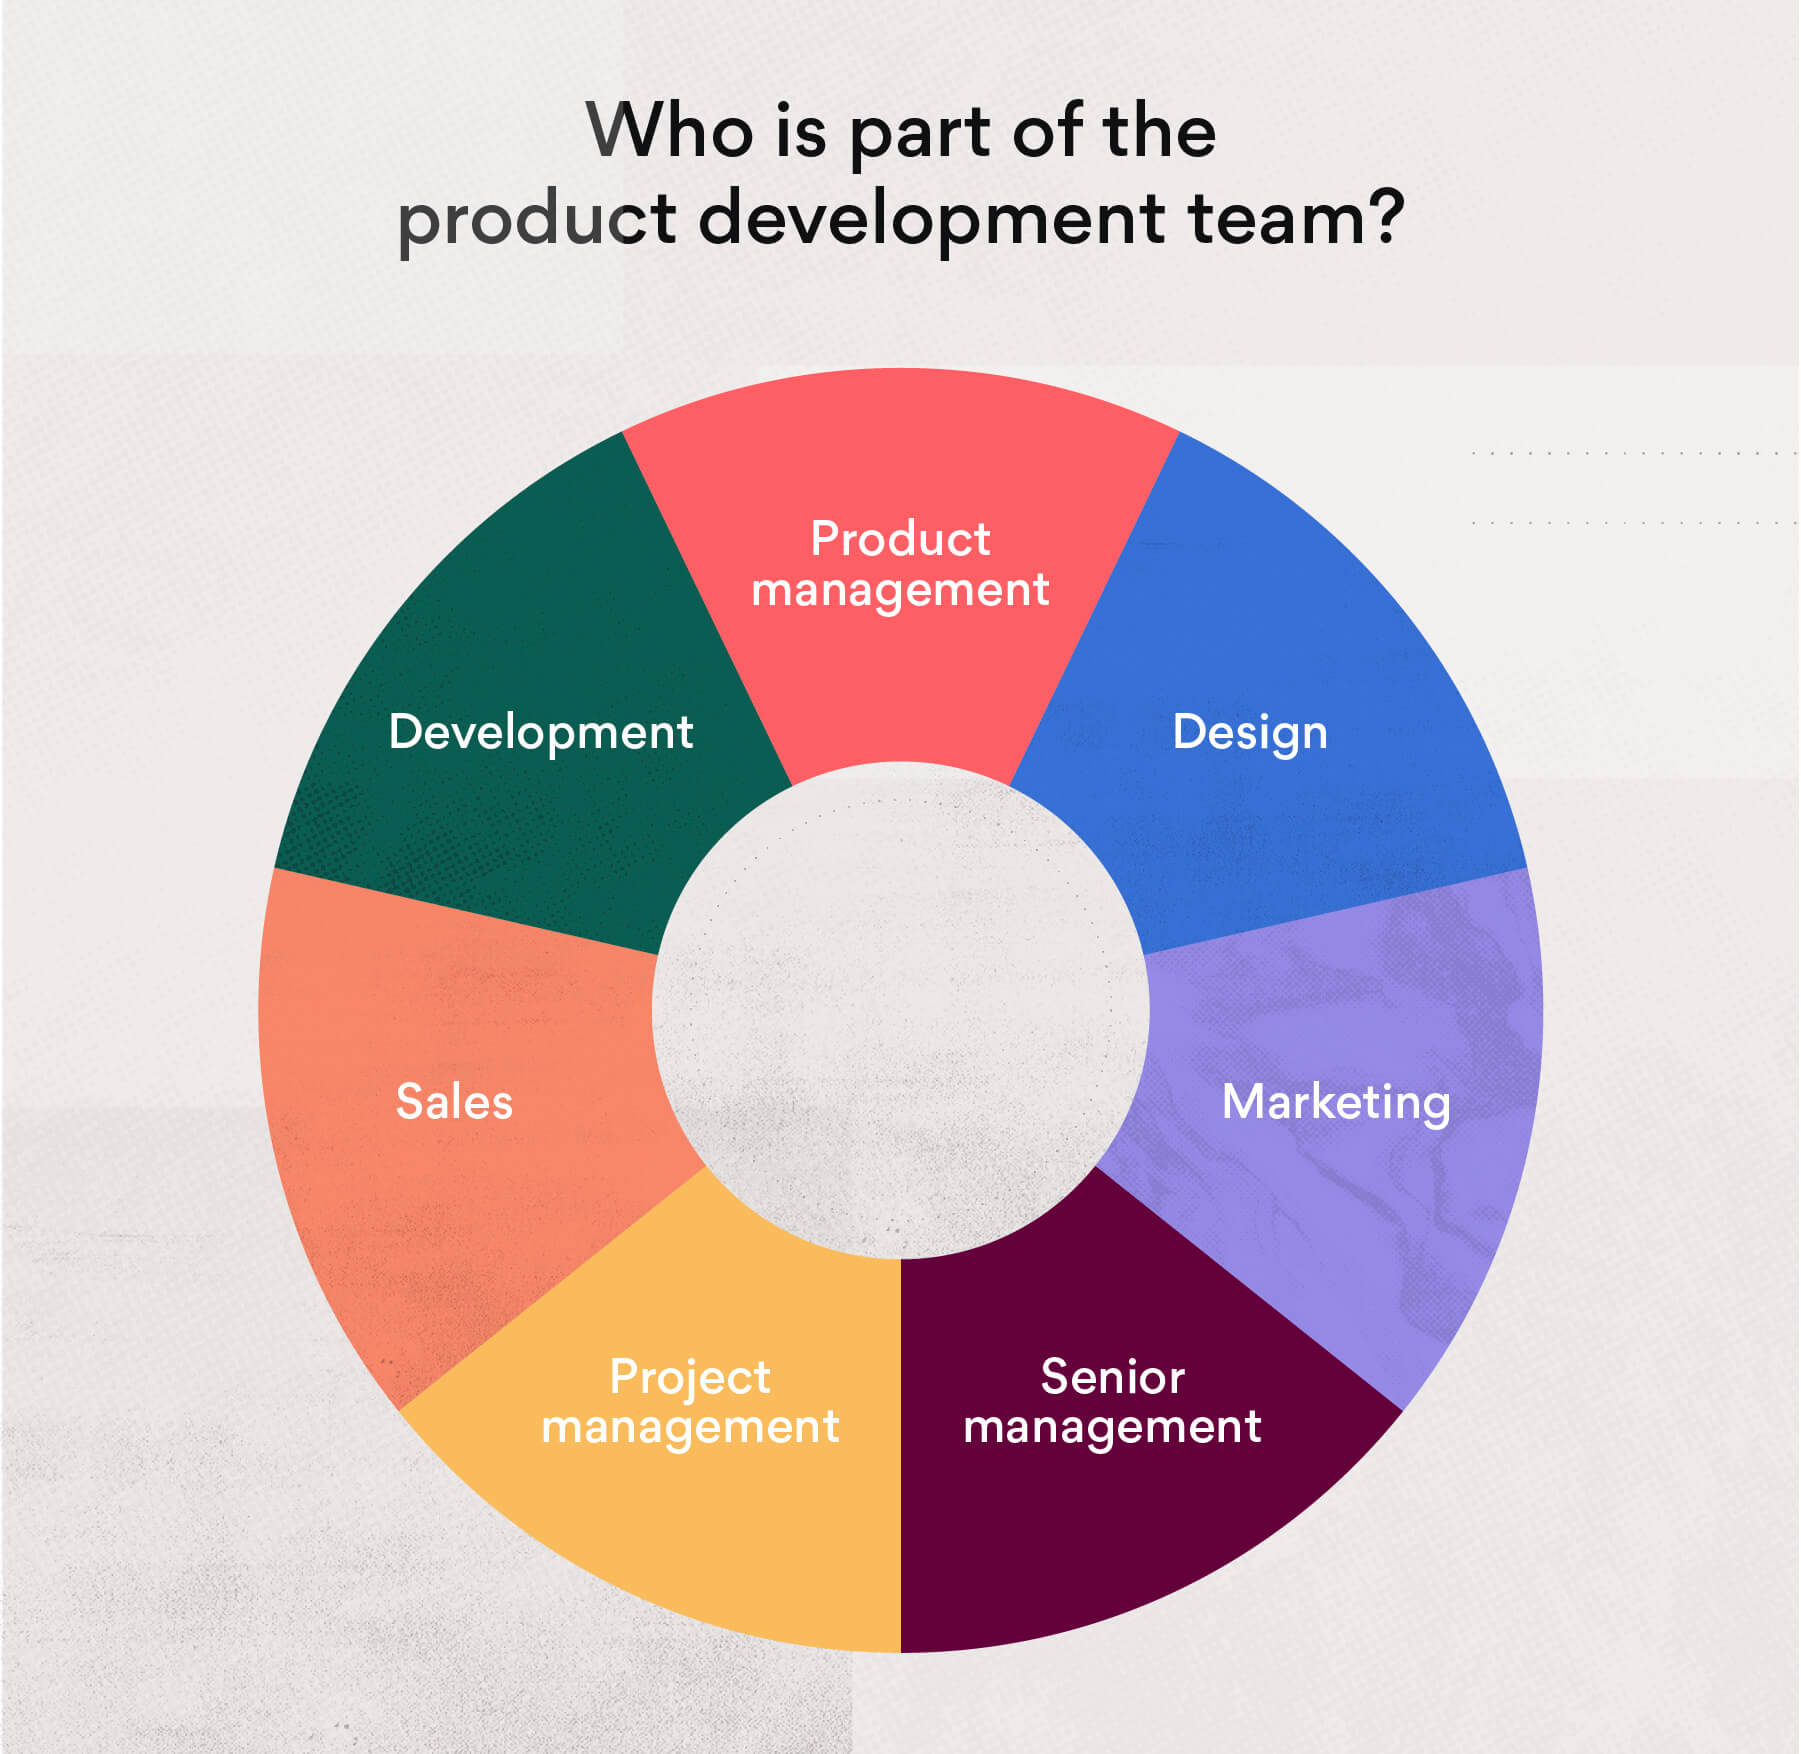 Who is part of the product development team?